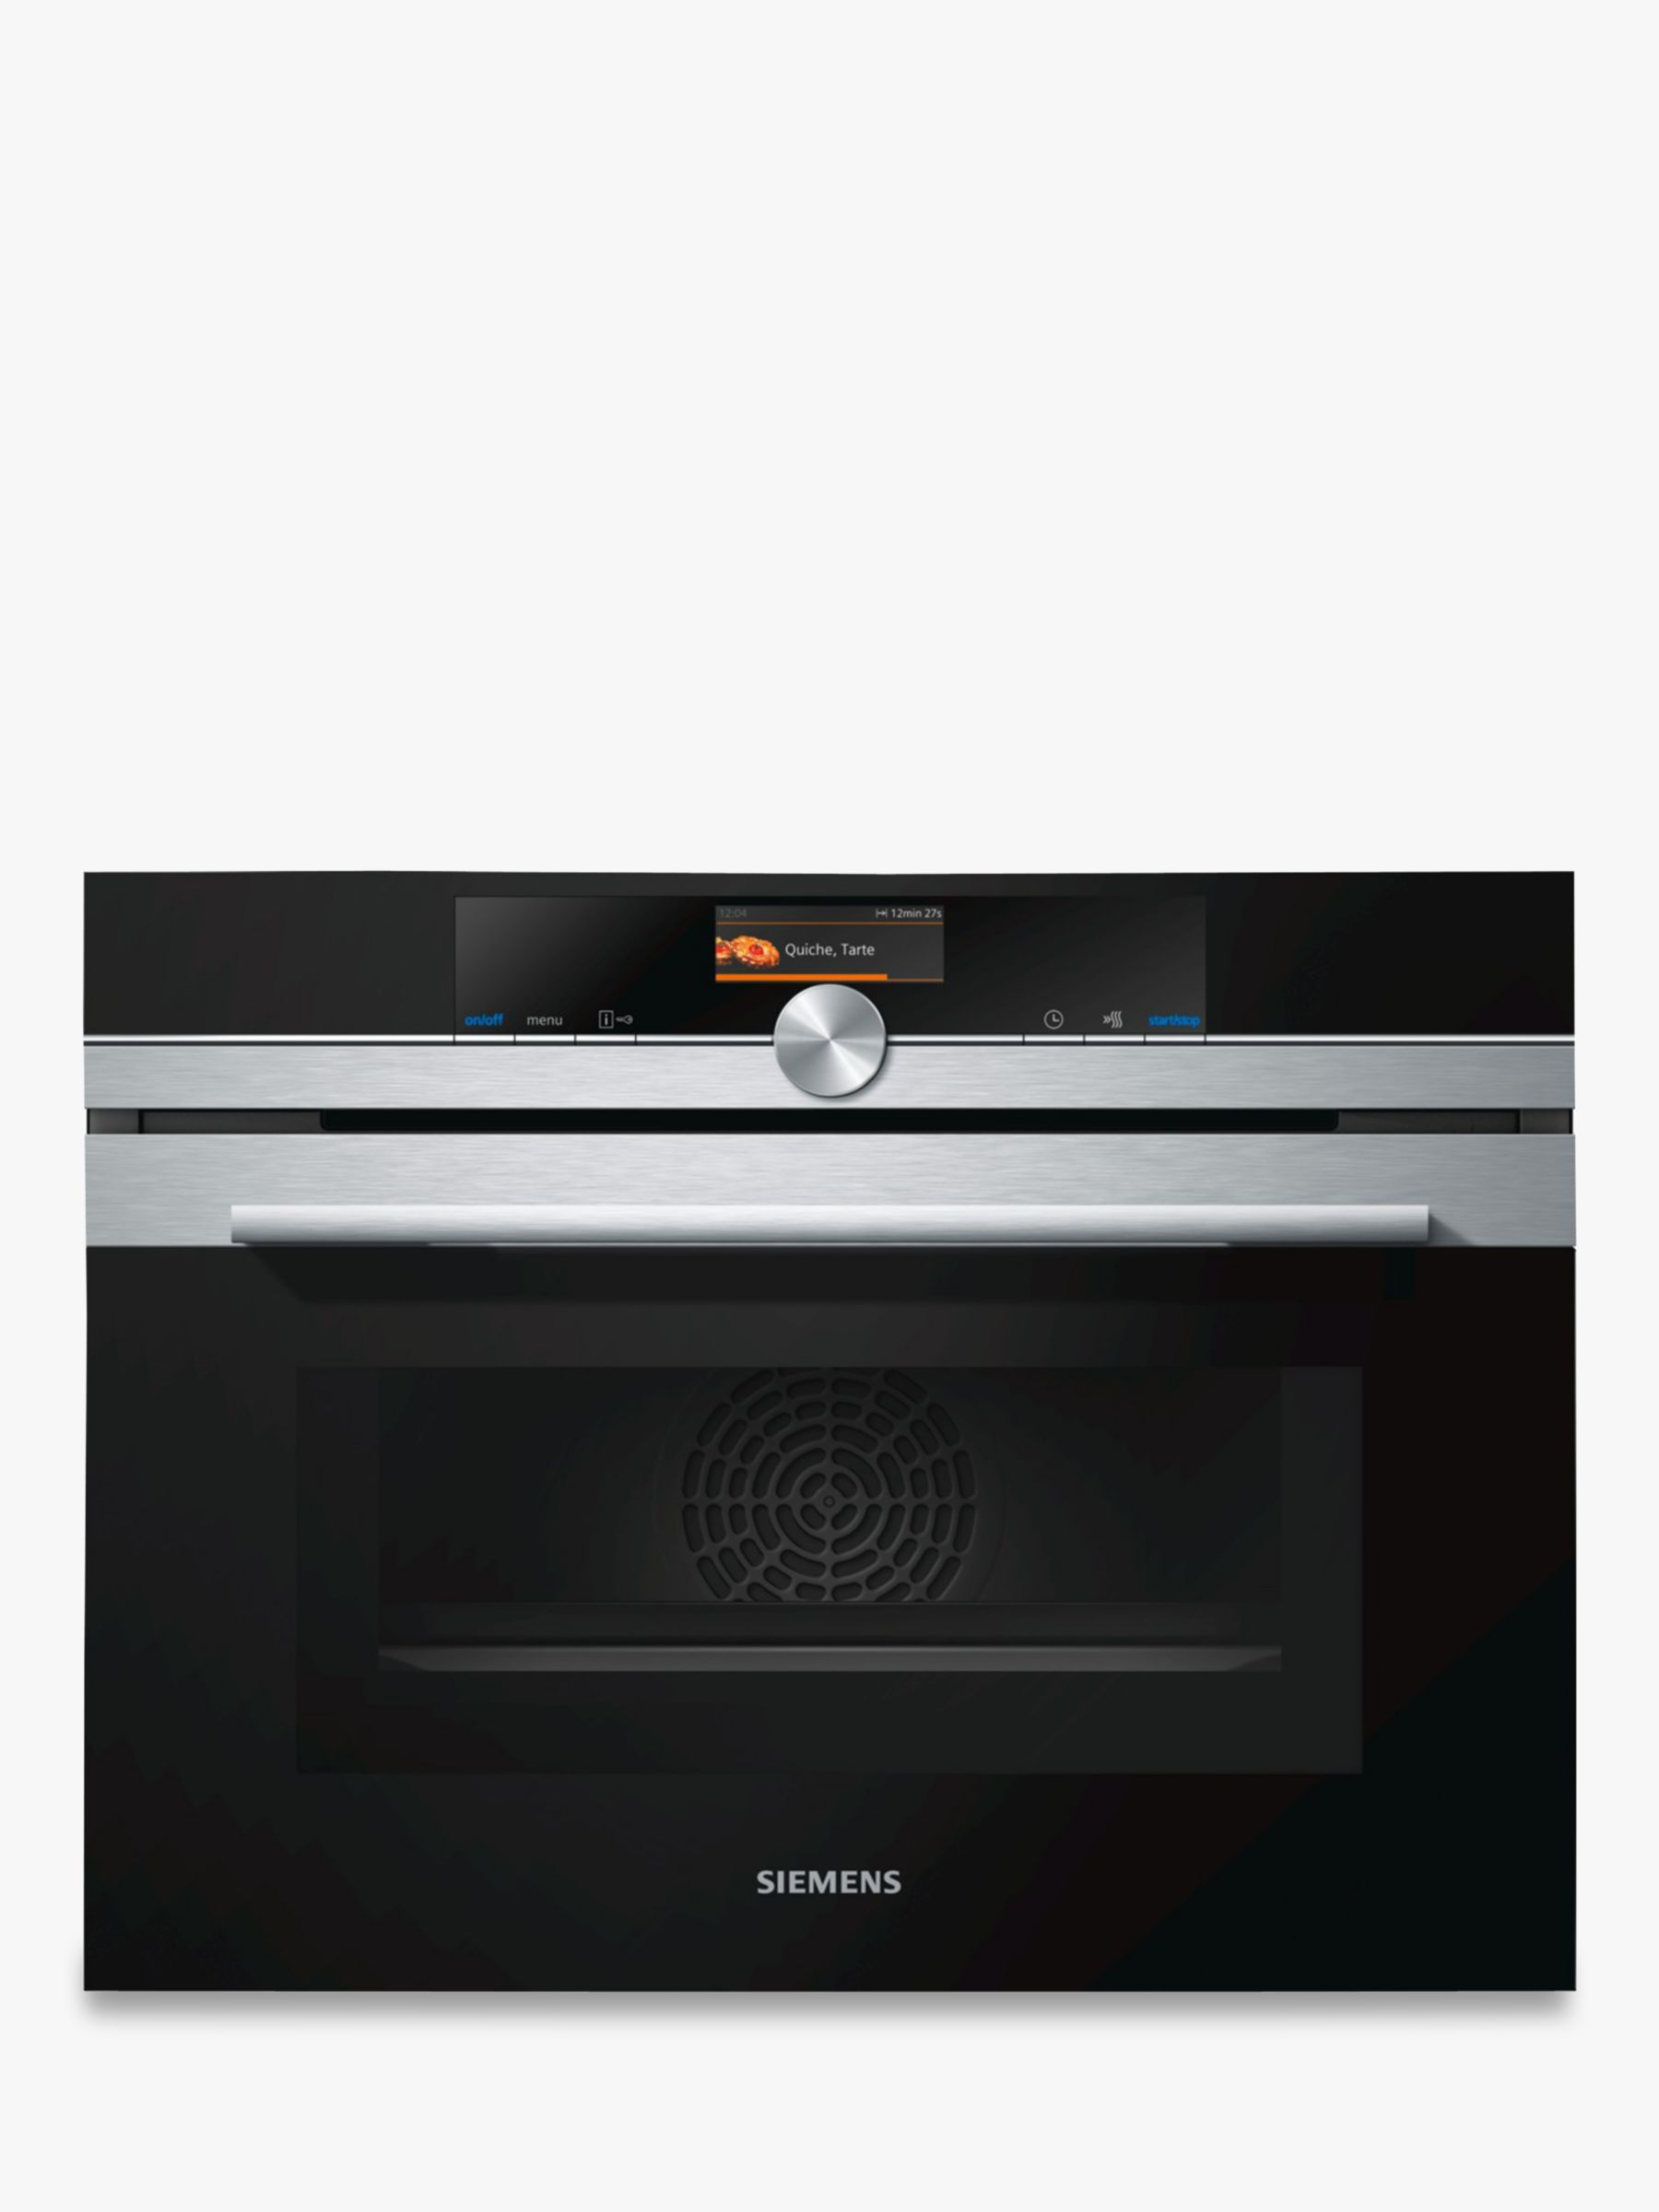 Siemens Siemens CM676GBS6B Built-in Microwave Oven with Home Connect, Stainless Steel